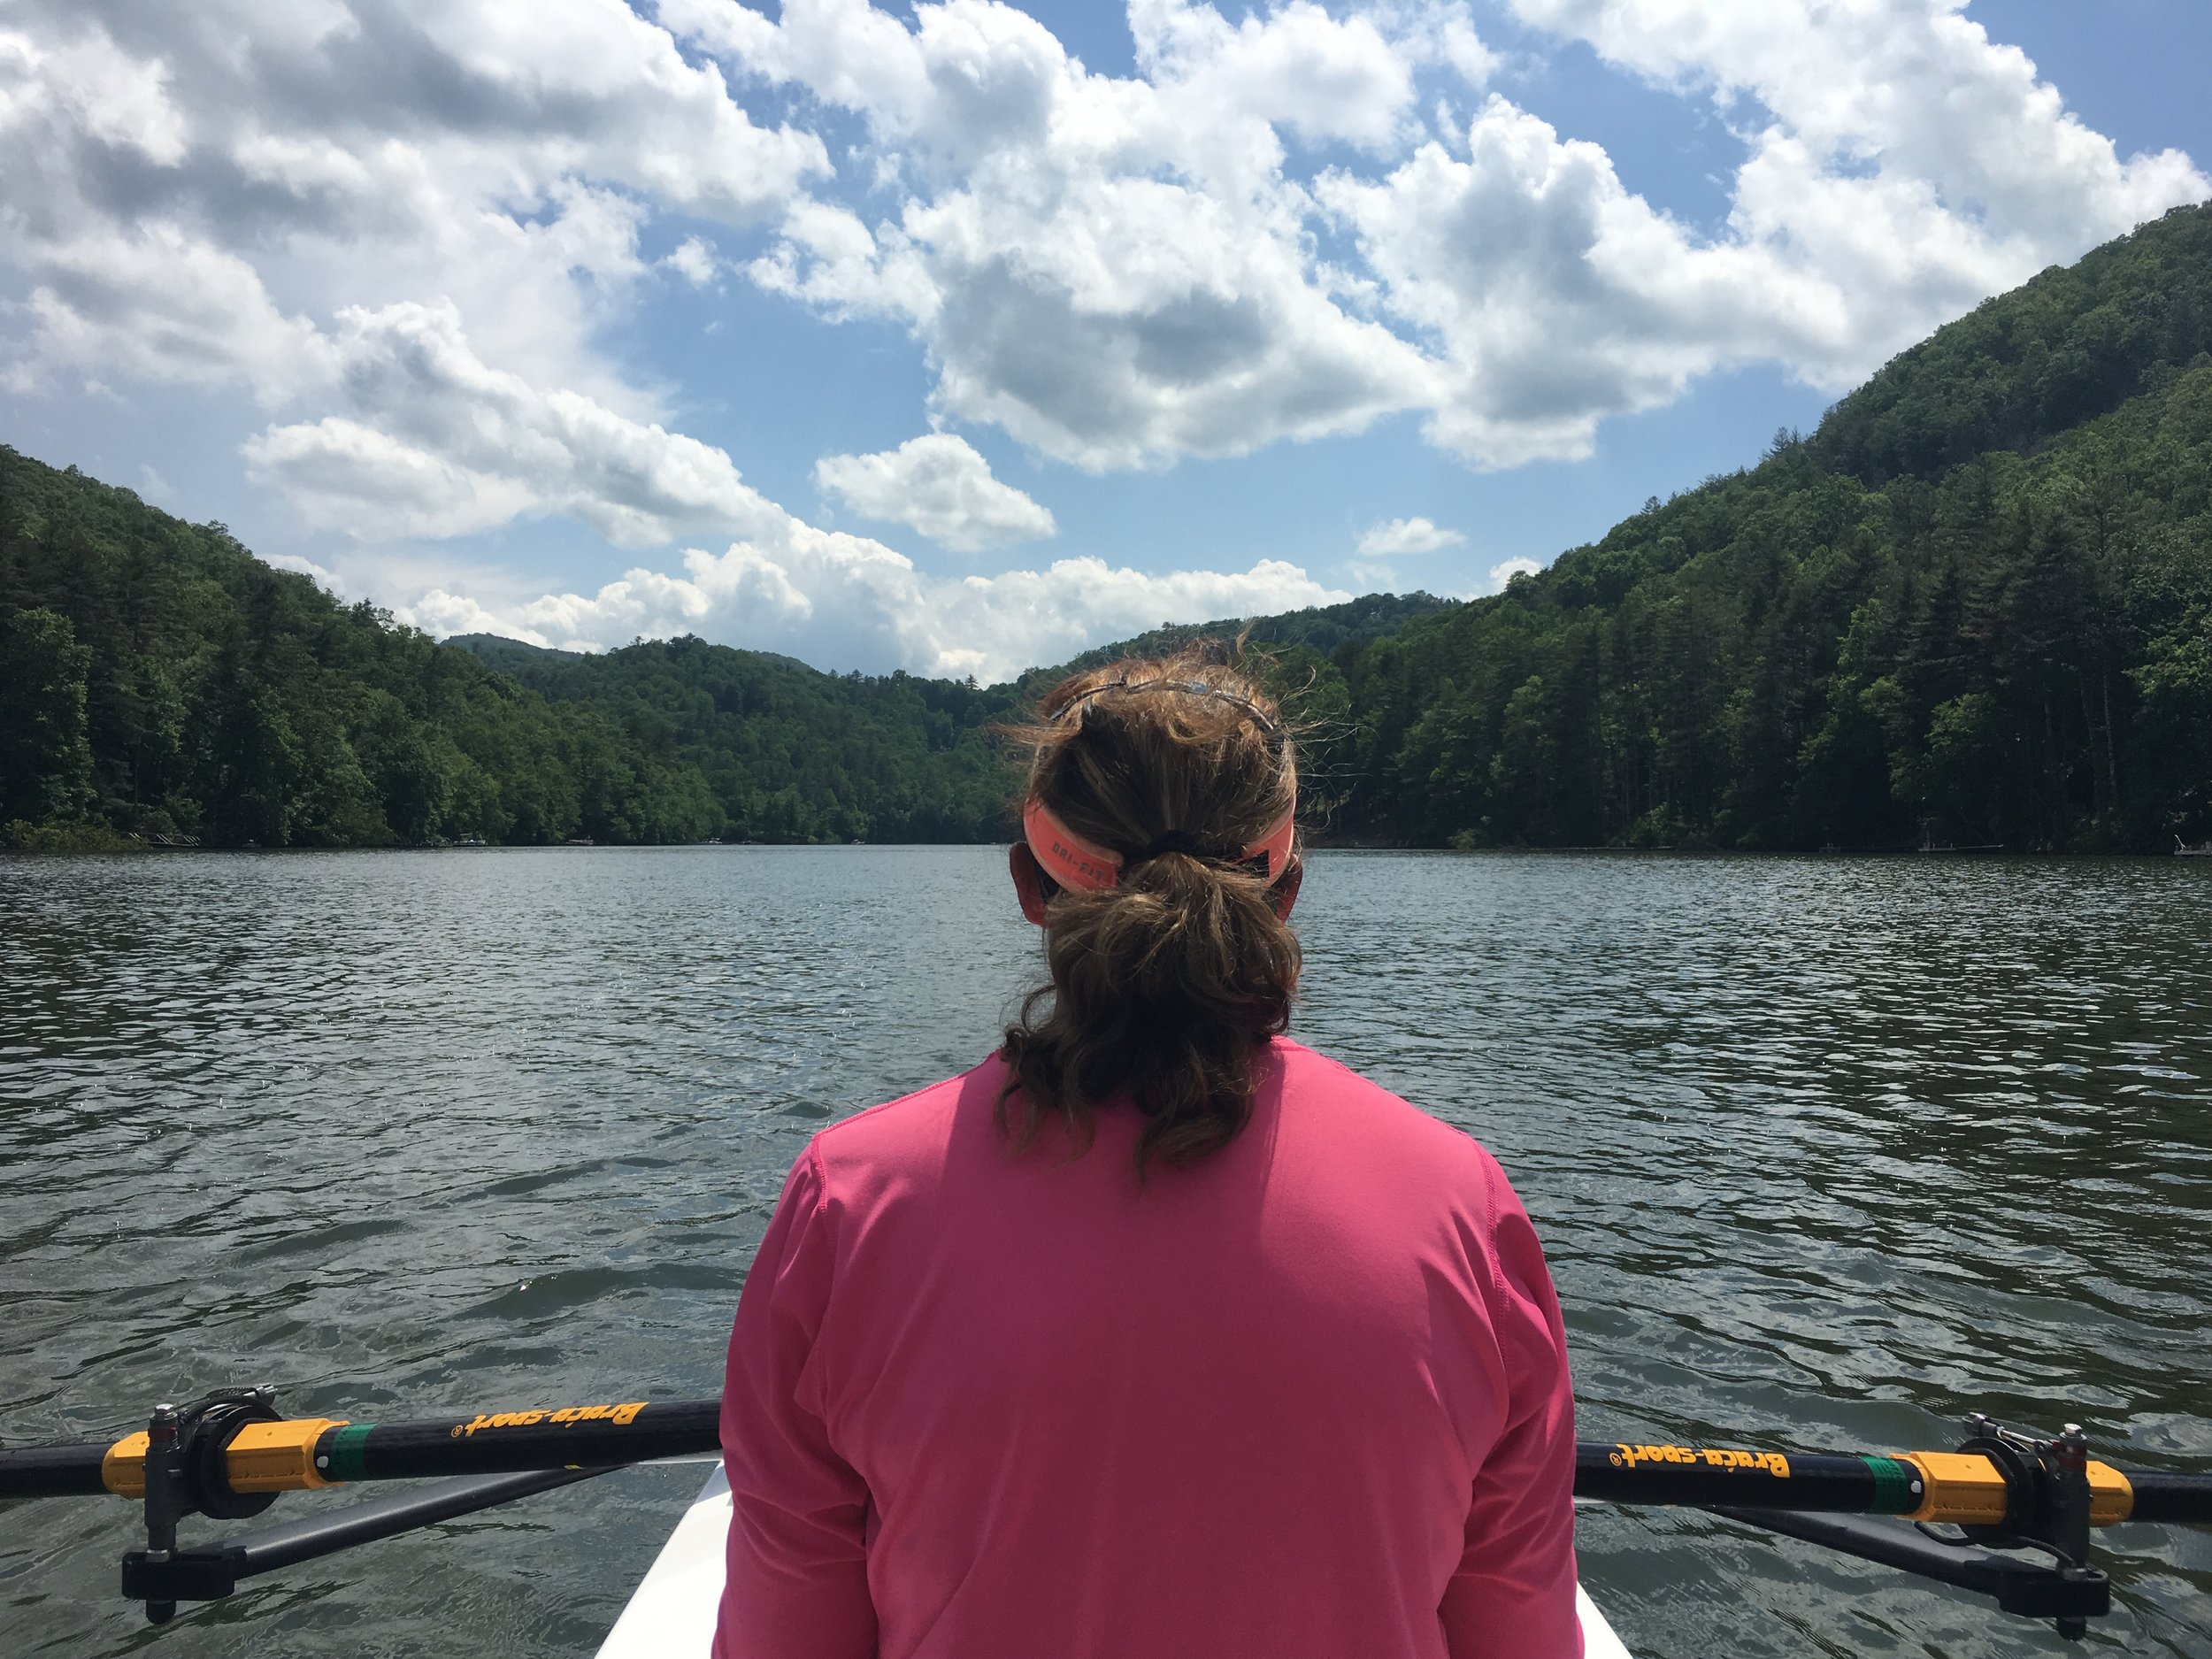 - Here we spent a couple of hours rowing around in the beautiful waters of Lake Glenville in N.C.